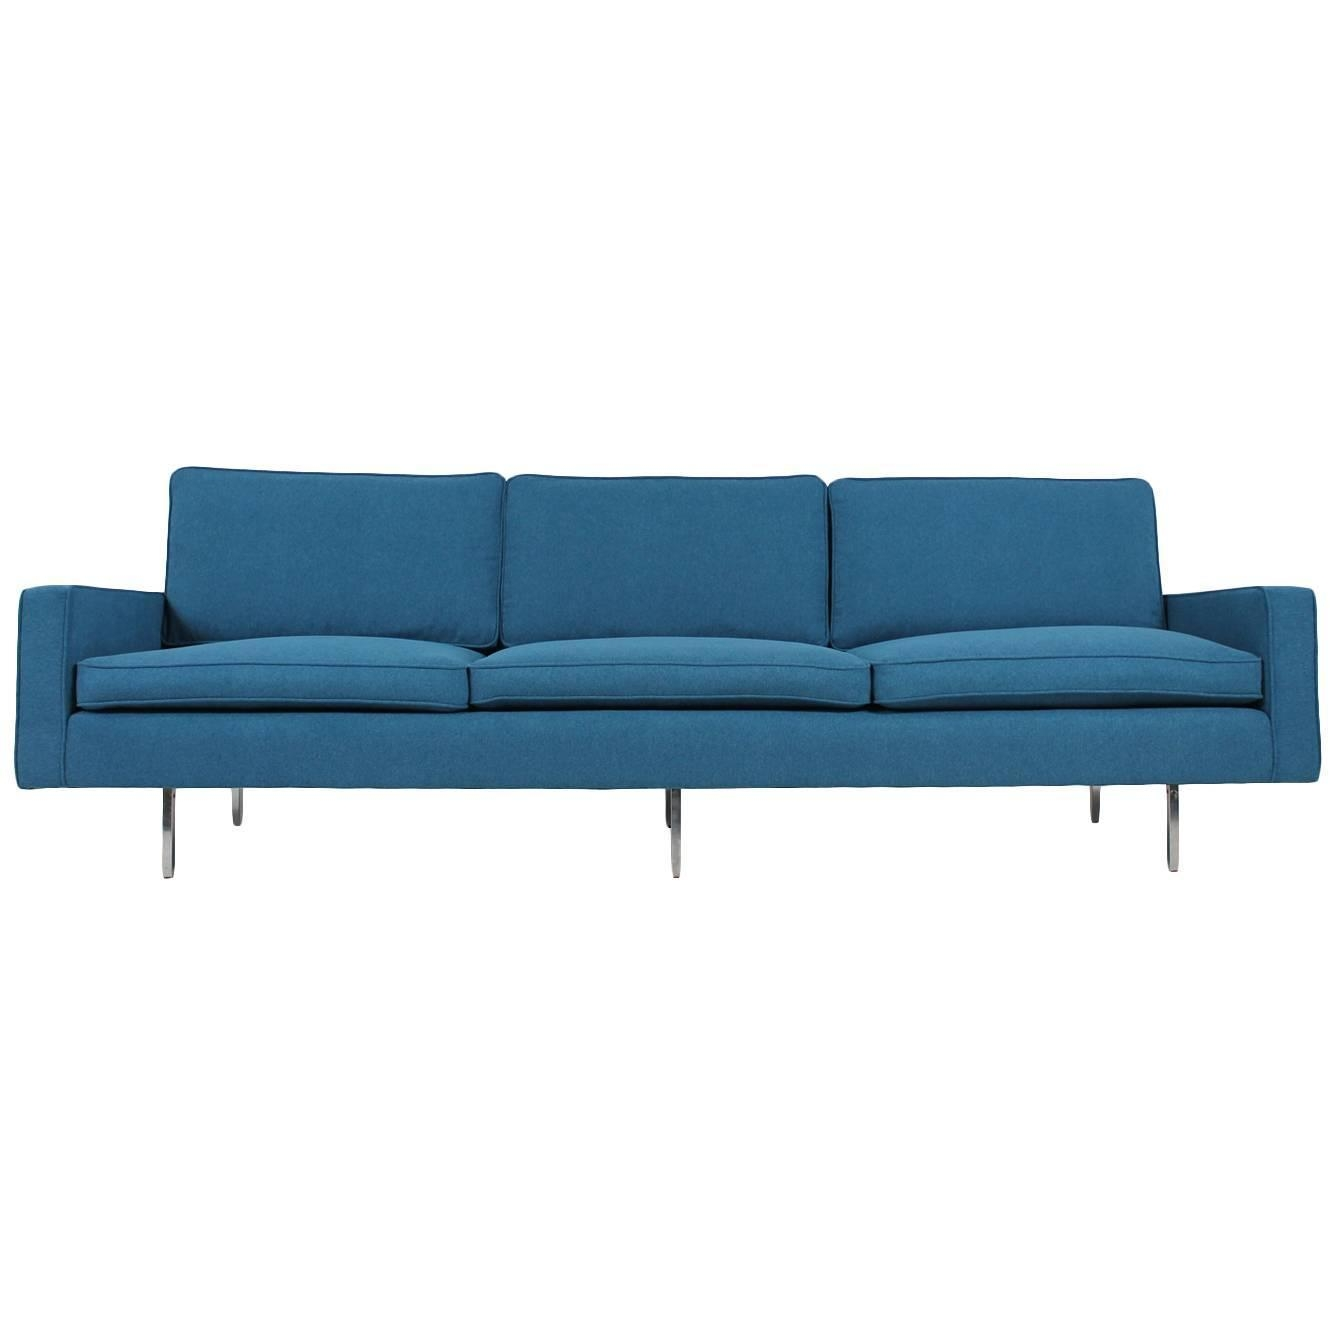 Beautiful Mid Century Florence Knoll Sofa Mod (Image 1 of 20)